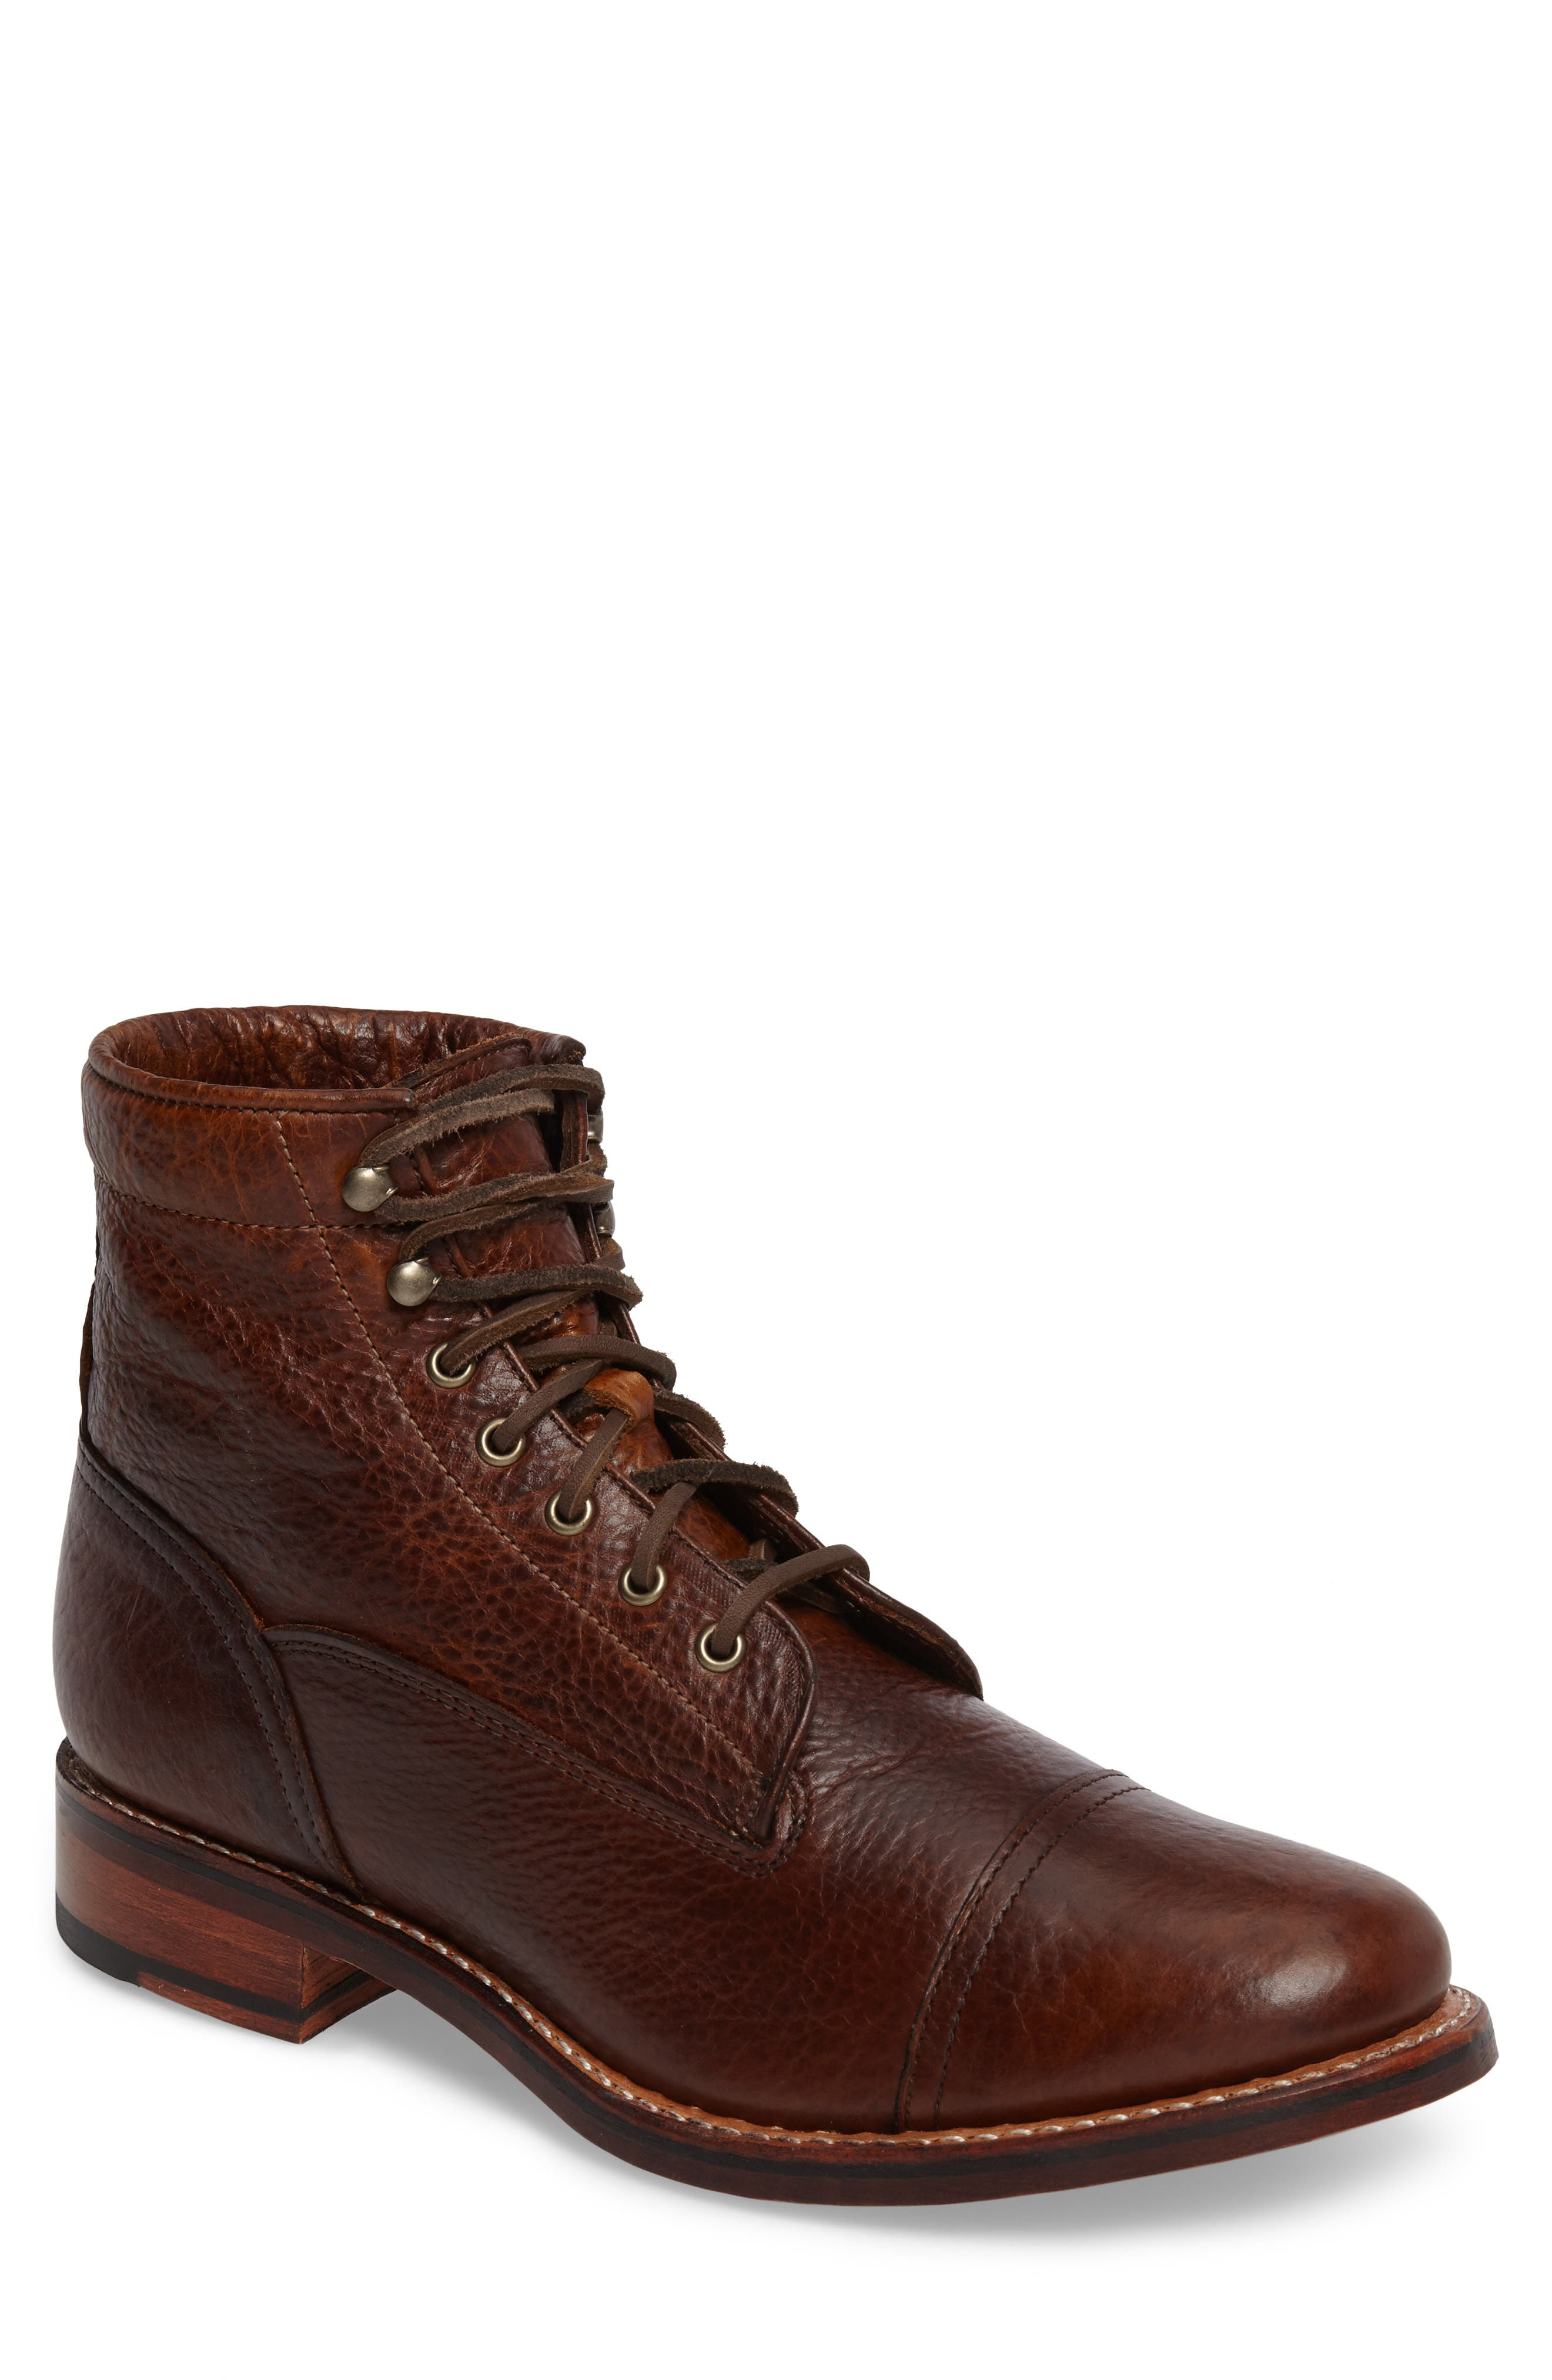 Ariat Highlands Cap Toe Boot,                         Main,                         color, Whiskey Bourbon Leather